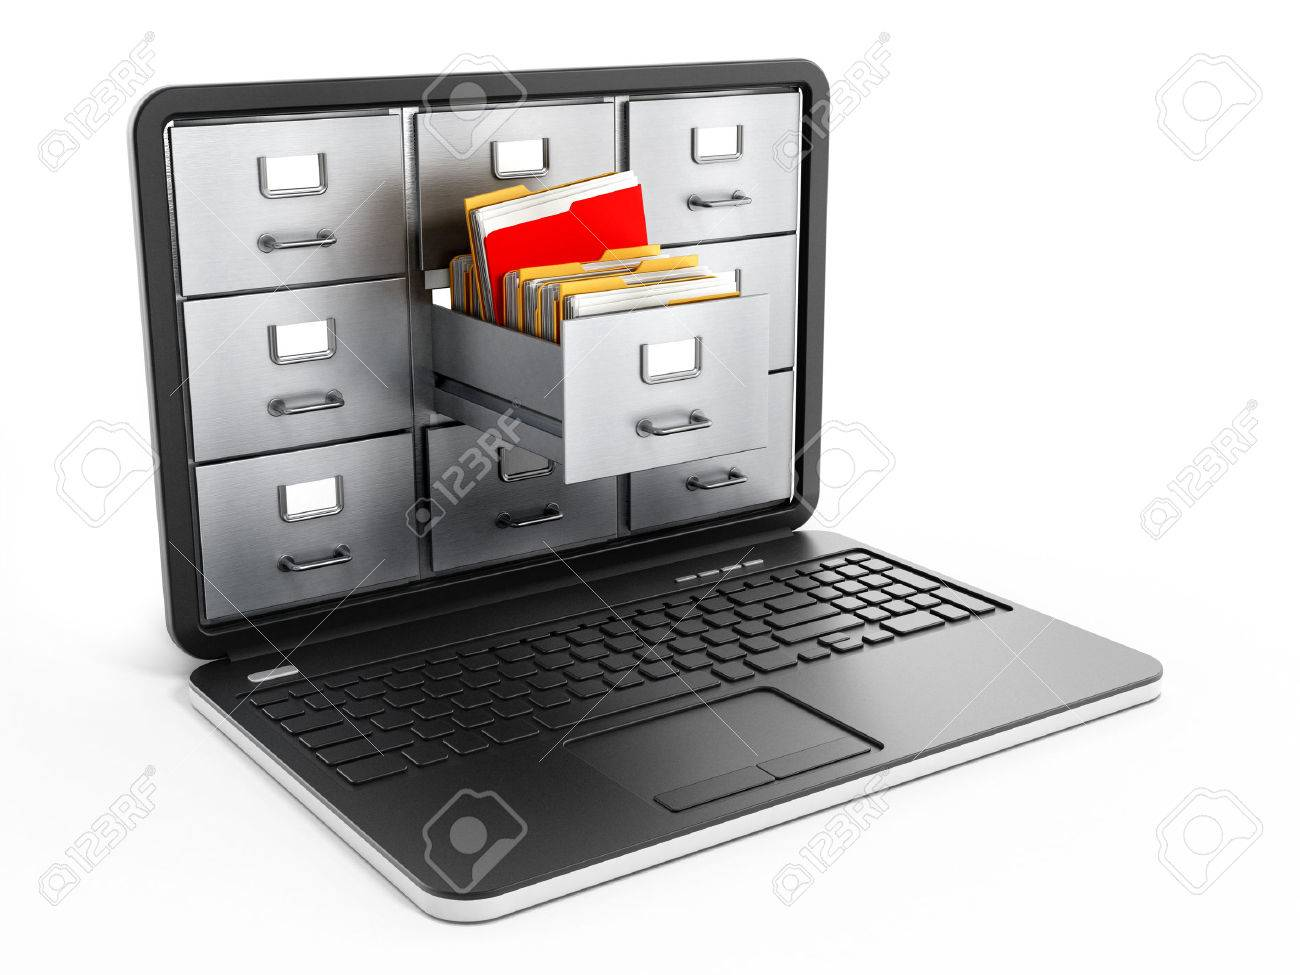 File cabinets inside the screen of laptop computer Stock Photo - 38705557